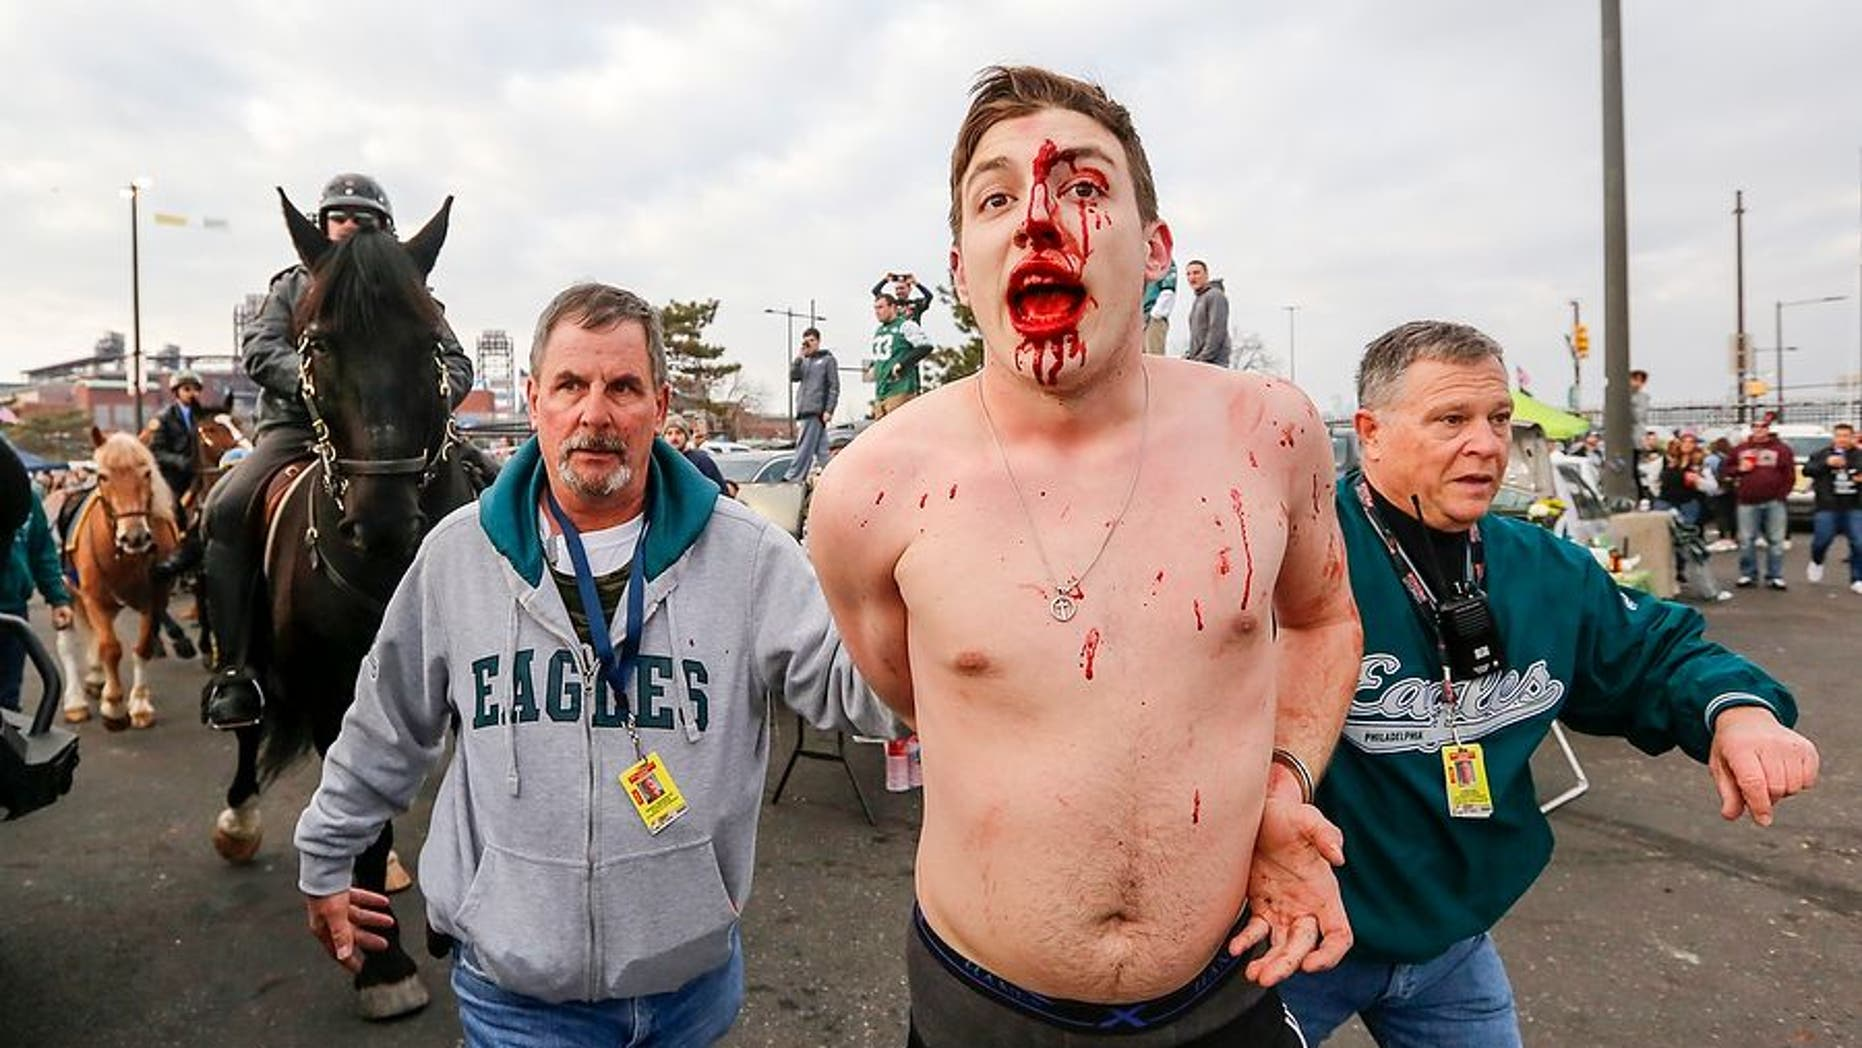 A bloodied fan was arrested by police after a massive fight broke out between Eagles tailgating fans and cops hours before the NFC Championship game with the Minnesota Vikings. (Andrew Mills/NJ Advance Media via AP)